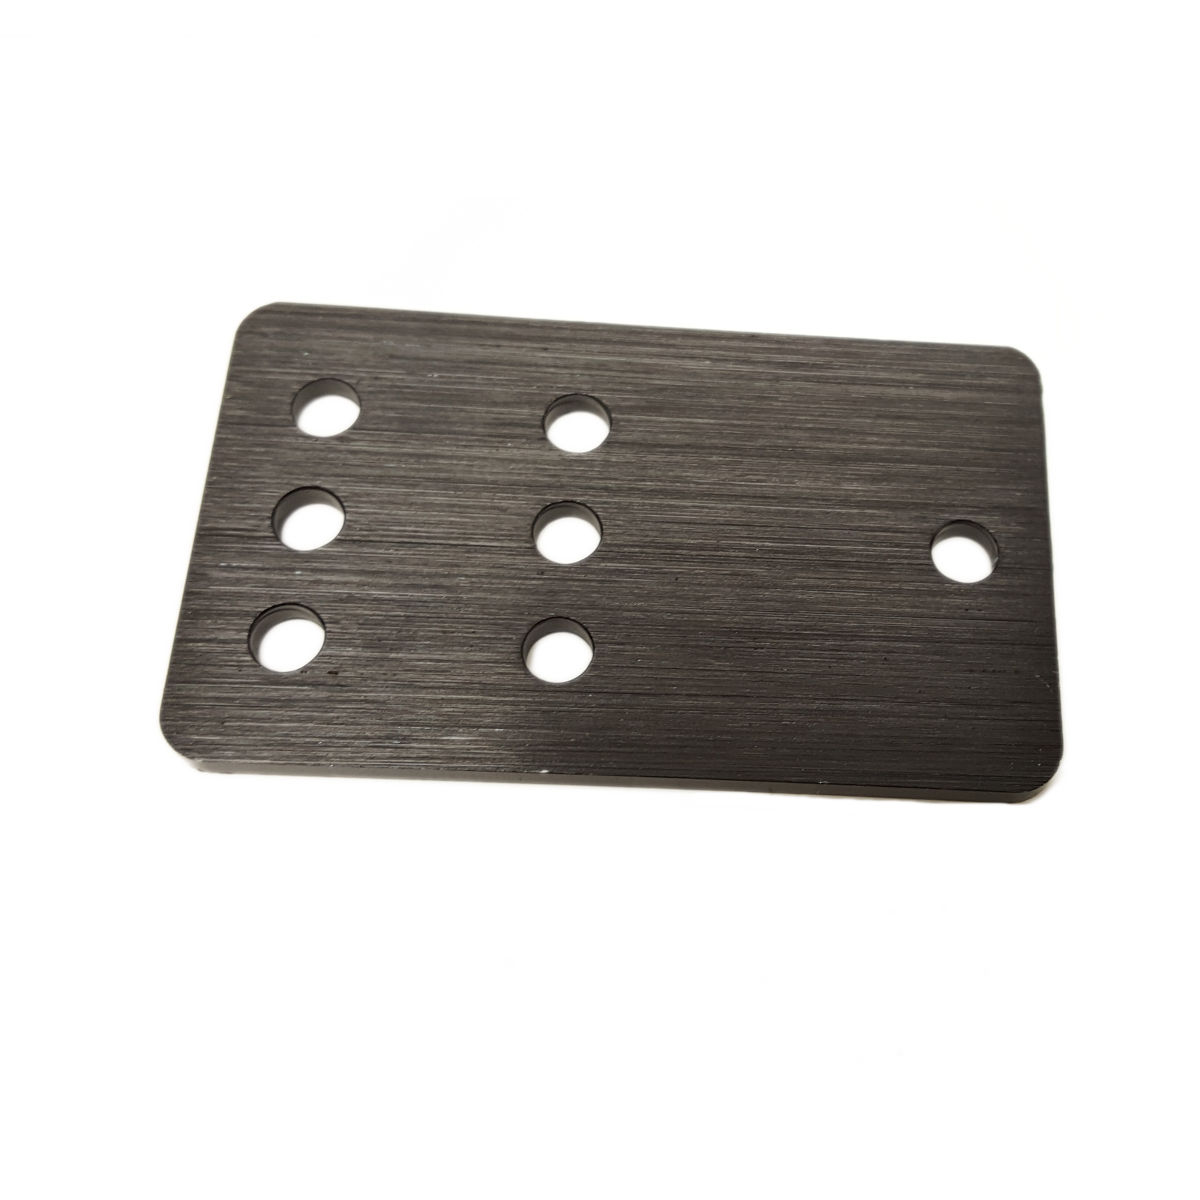 Idler Pulley Mount Plate - 3D Printing Canada